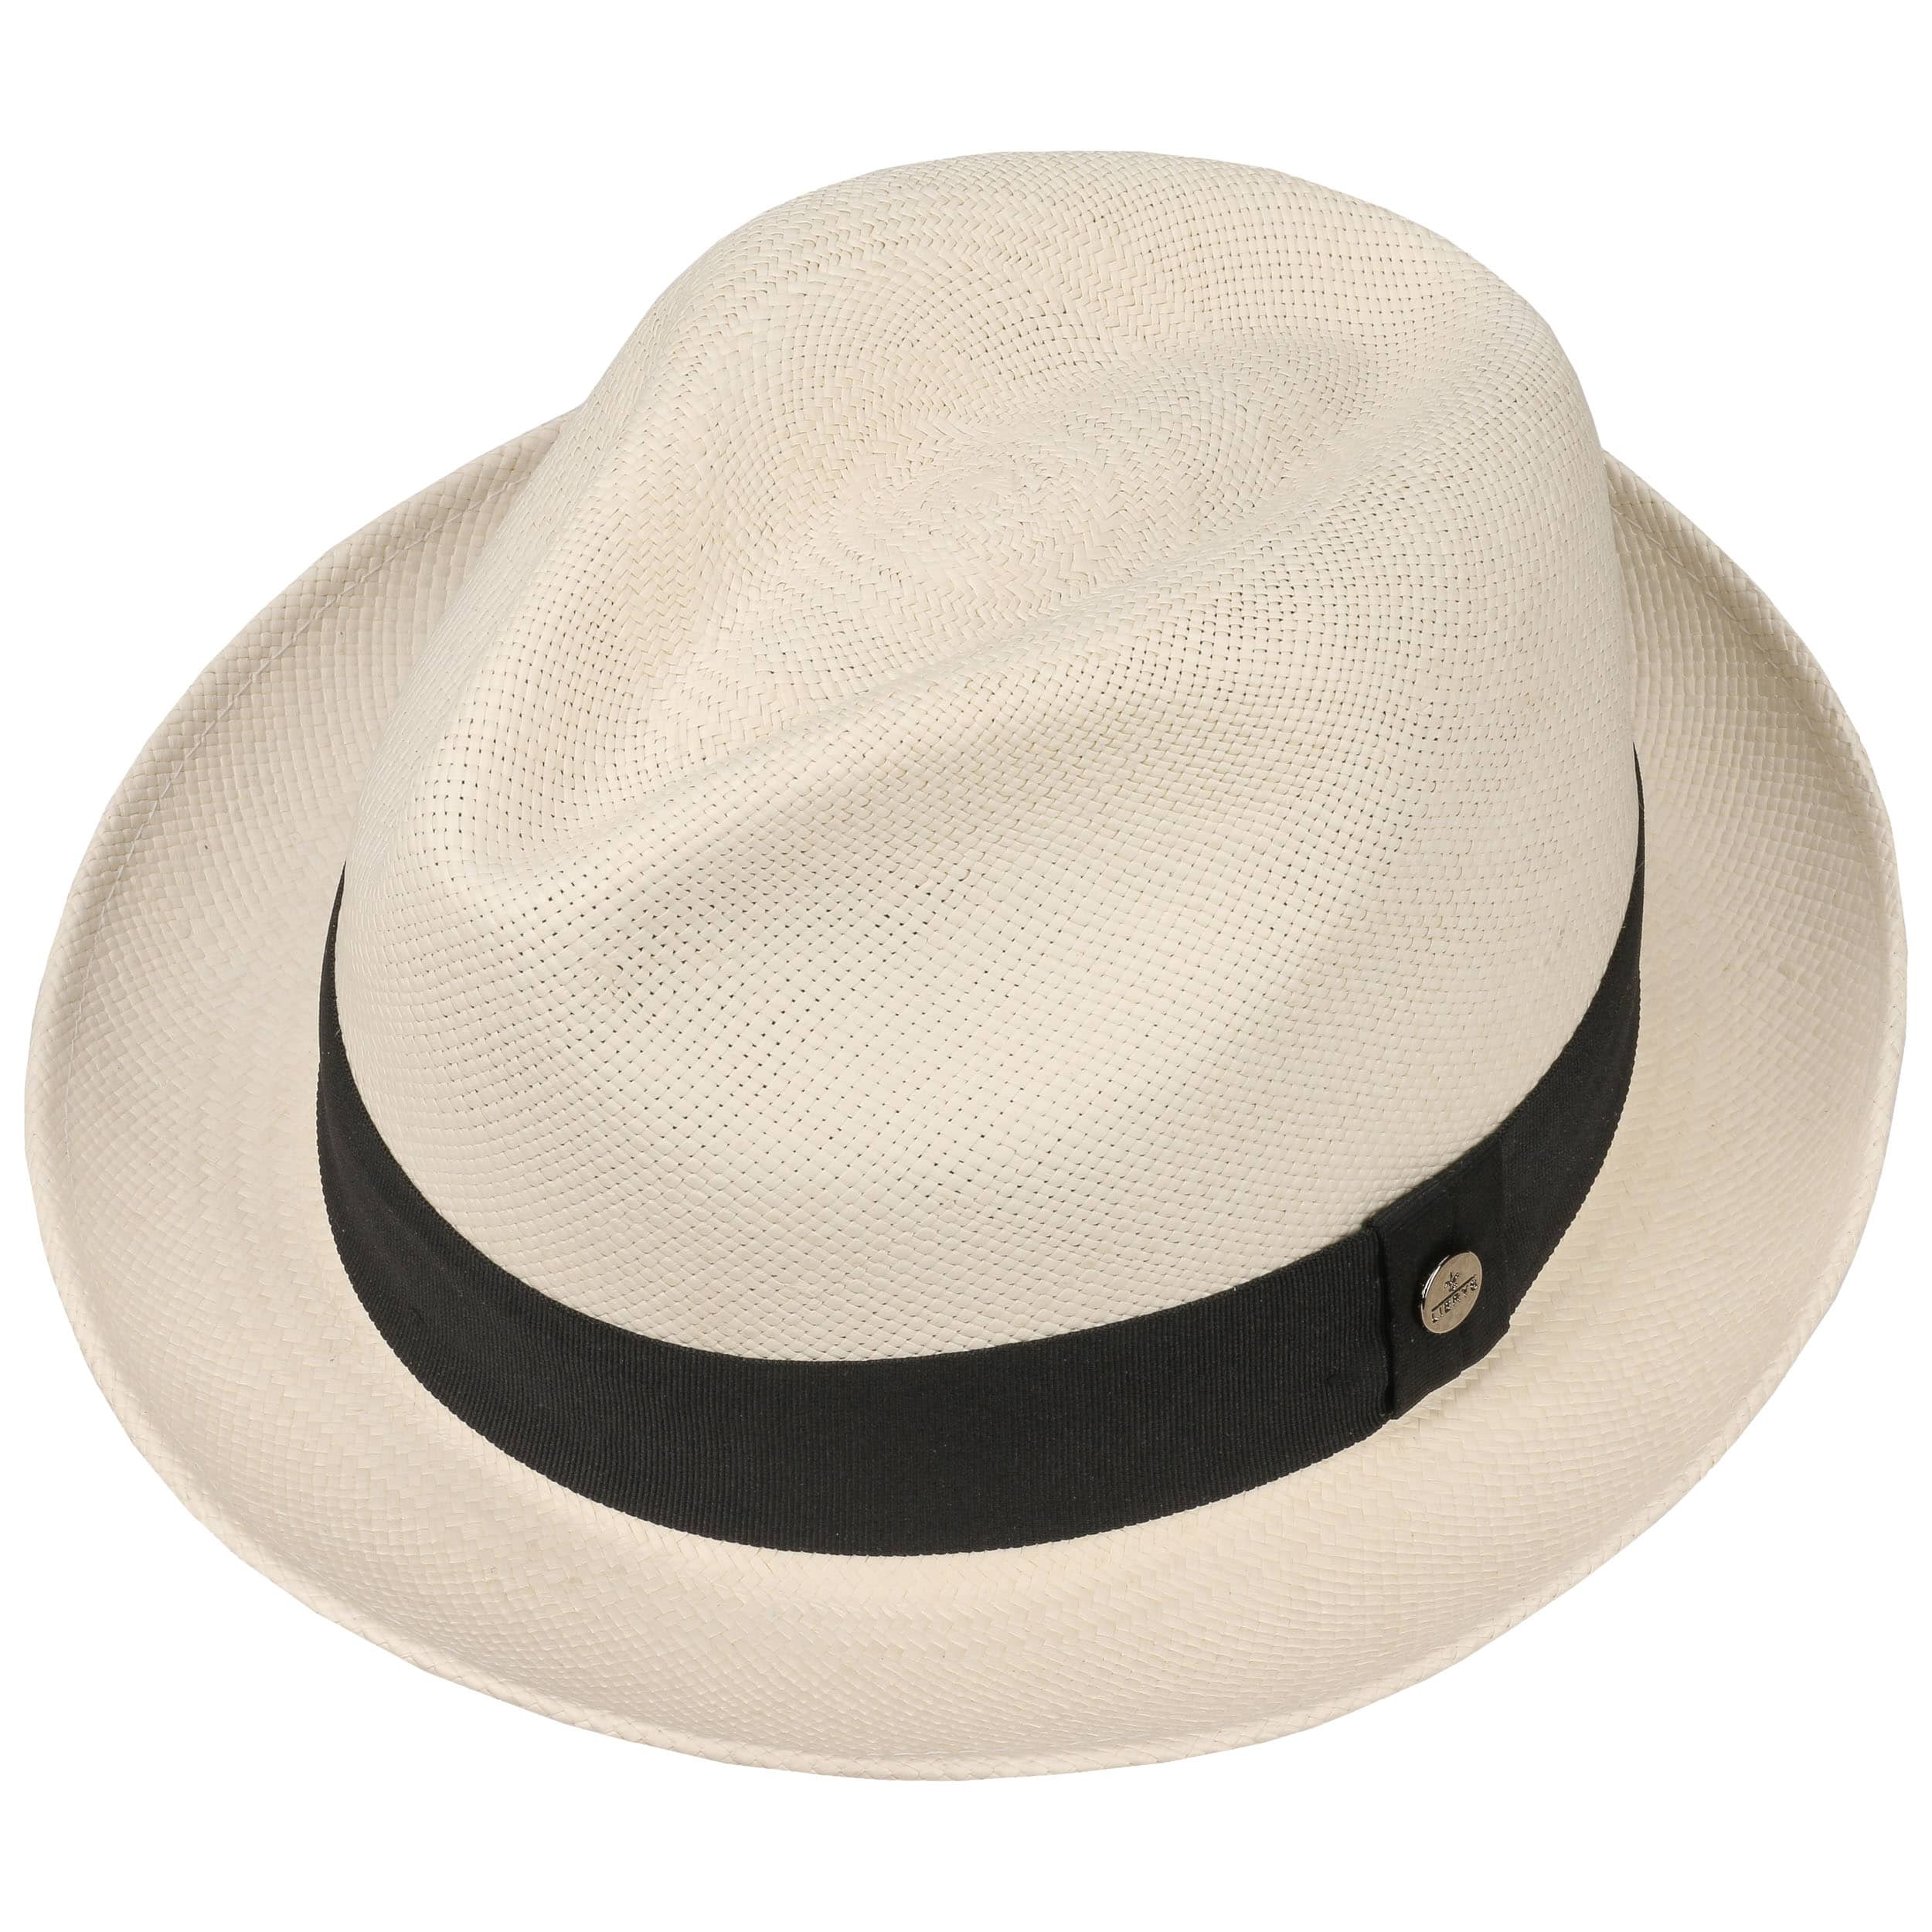 ... Eduardo Player Panama Hat by Lierys - nature 1 ... fca3b90800a0